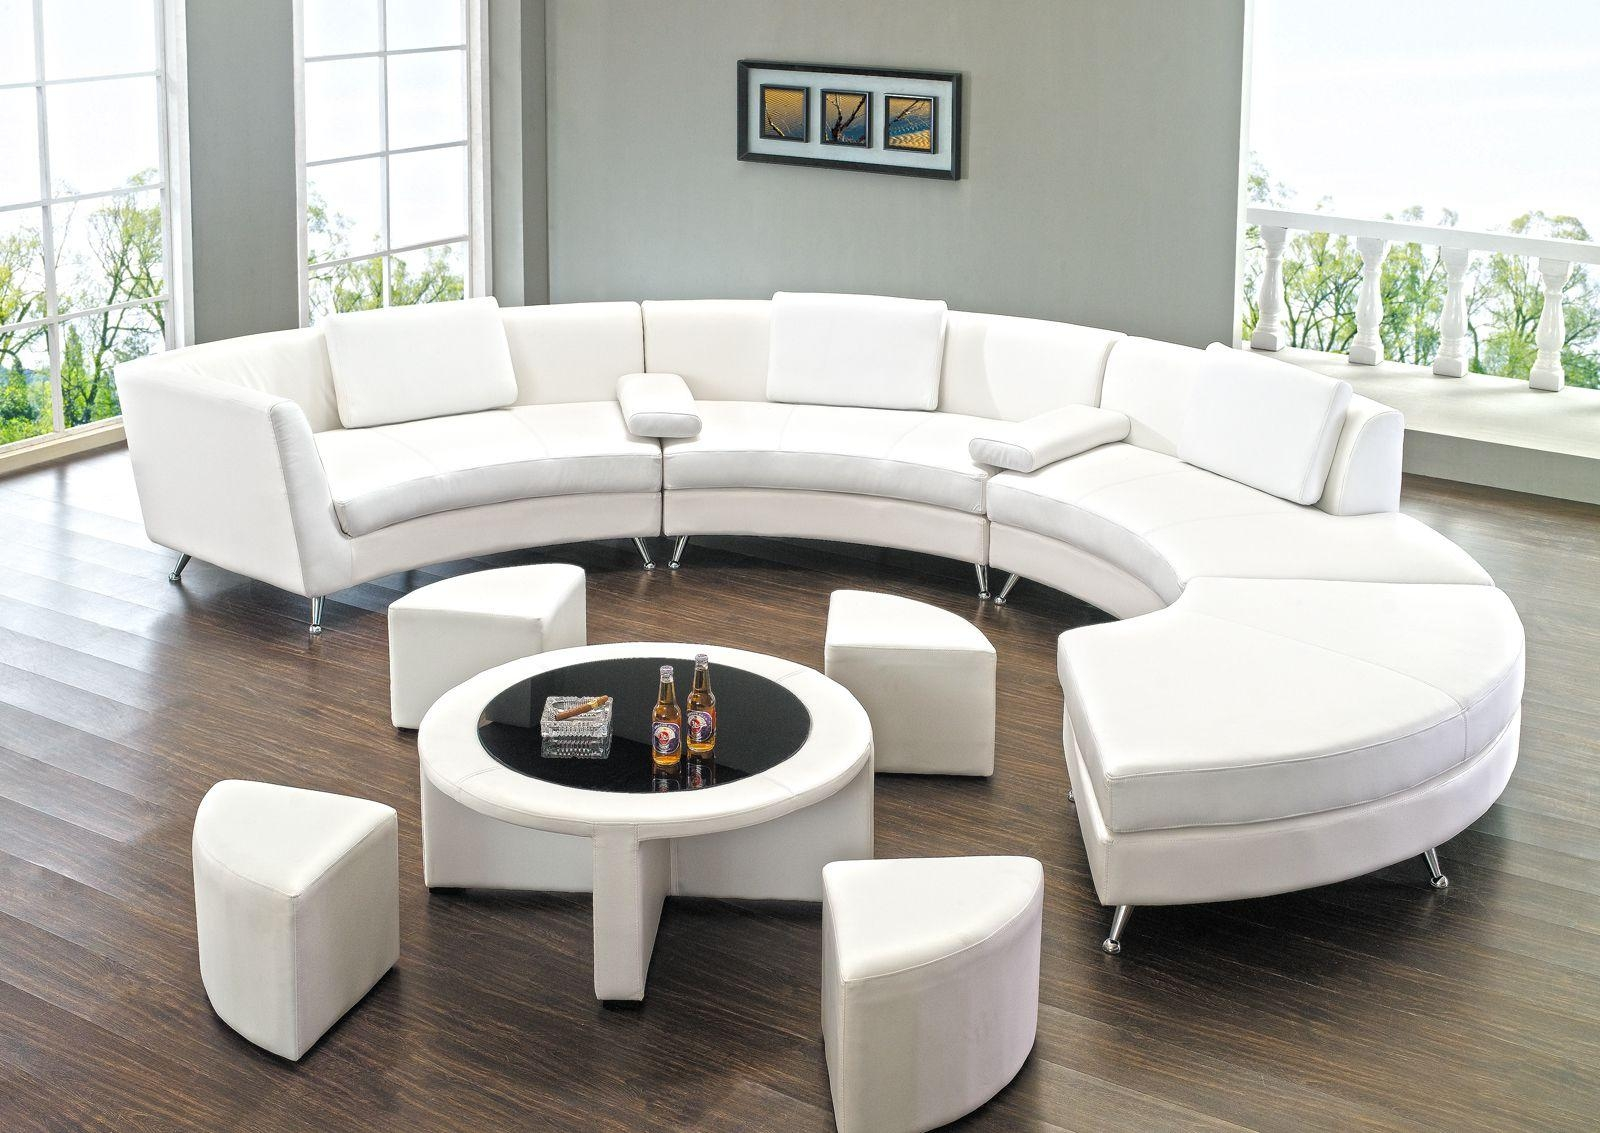 Round Sectional Sofa For Unique Seating Alternative – Traba Homes Throughout Round Sectional Sofa (View 4 of 20)